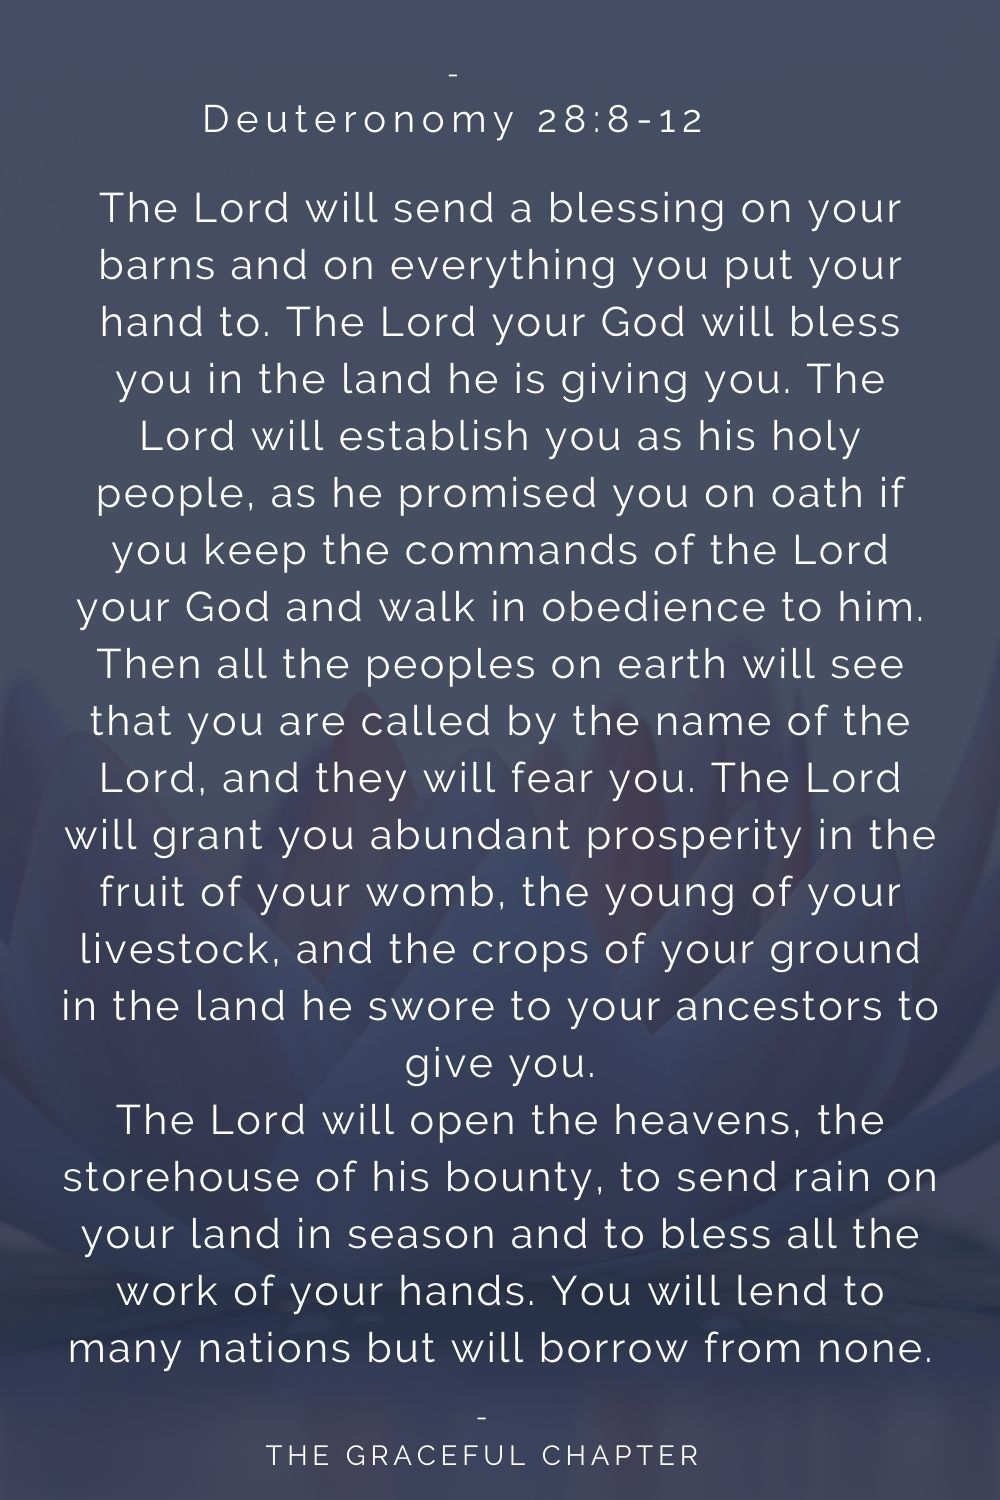 The Lord will send a blessing on your barns and on everything you put your hand to. The Lord your God will bless you in the land he is giving you. The Lord will establish you as his holy people, as he promised you on oath if you keep the commands of the Lord your God and walk in obedience to him. Then all the peoples on earth will see that you are called by the name of the Lord, and they will fear you. The Lord will grant you abundant prosperity in the fruit of your womb, the young of your livestock, and the crops of your ground in the land he swore to your ancestors to give you. The Lord will open the heavens, the storehouse of his bounty, to send rain on your land in season and to bless all the work of your hands. You will lend to many nations but will borrow from none. Deuteronomy 28:8-12